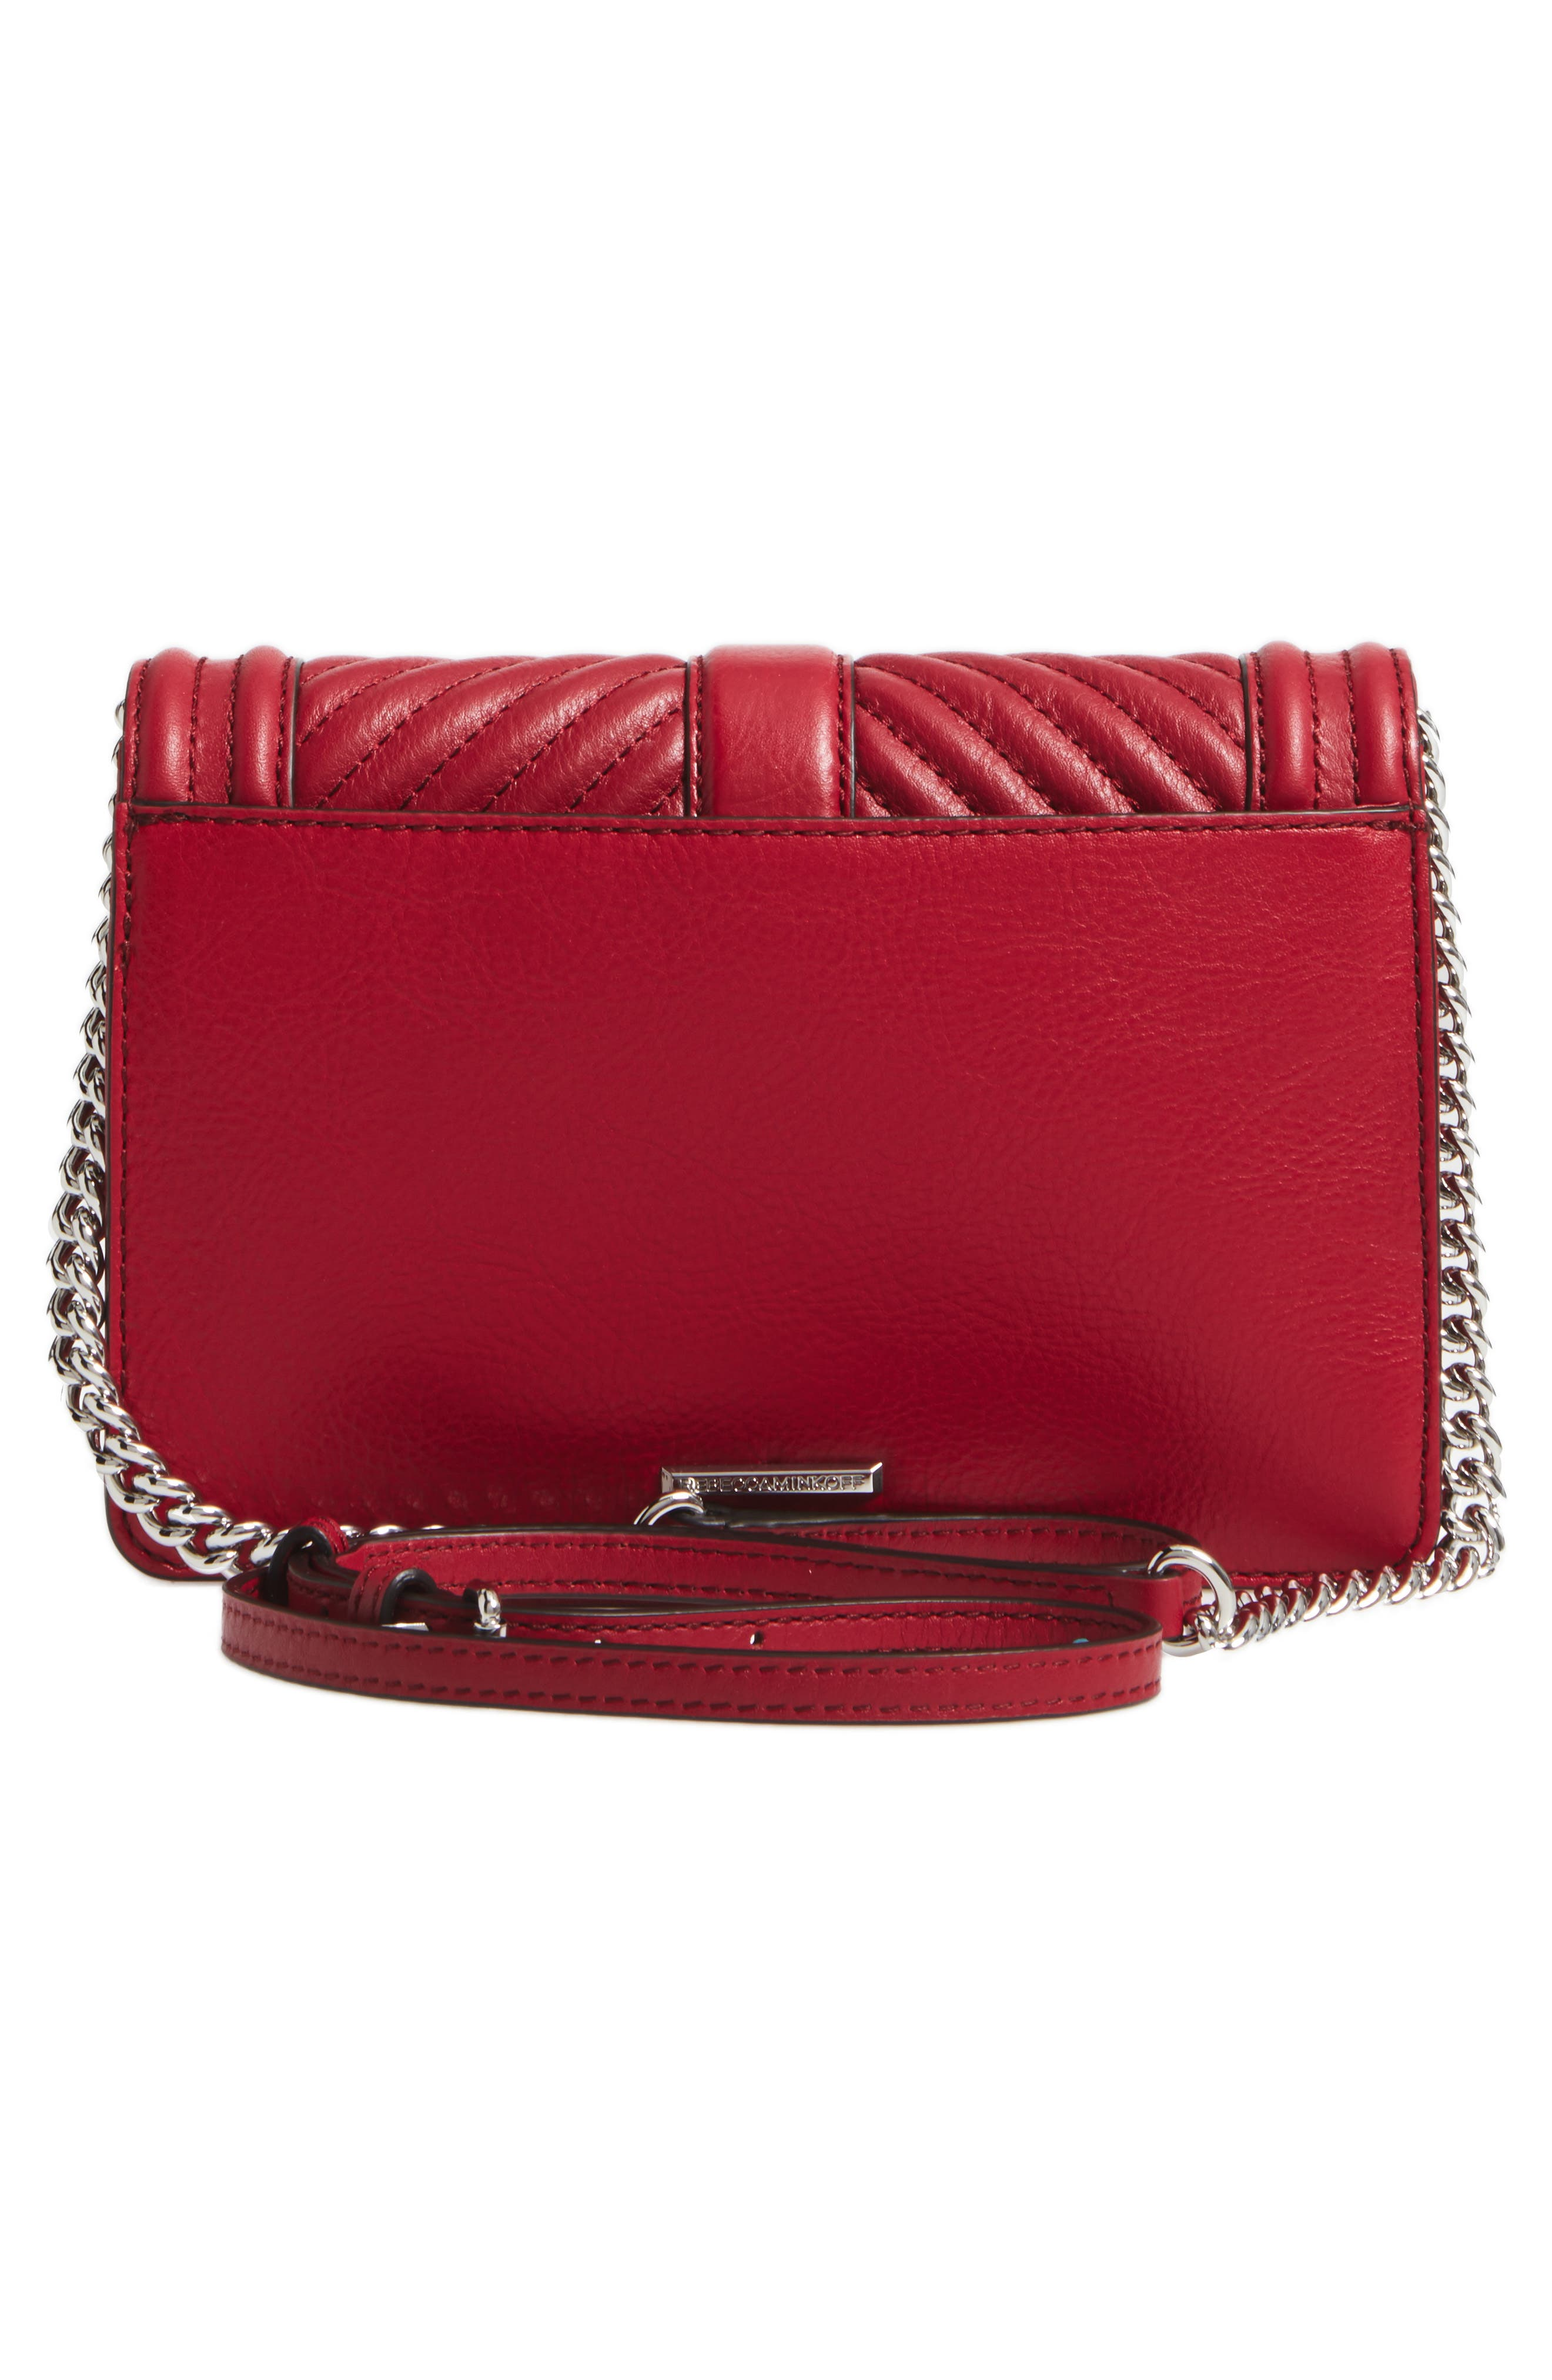 Small Love Leather Crossbody Bag,                             Alternate thumbnail 2, color,                             Beet/ Silver Hardware